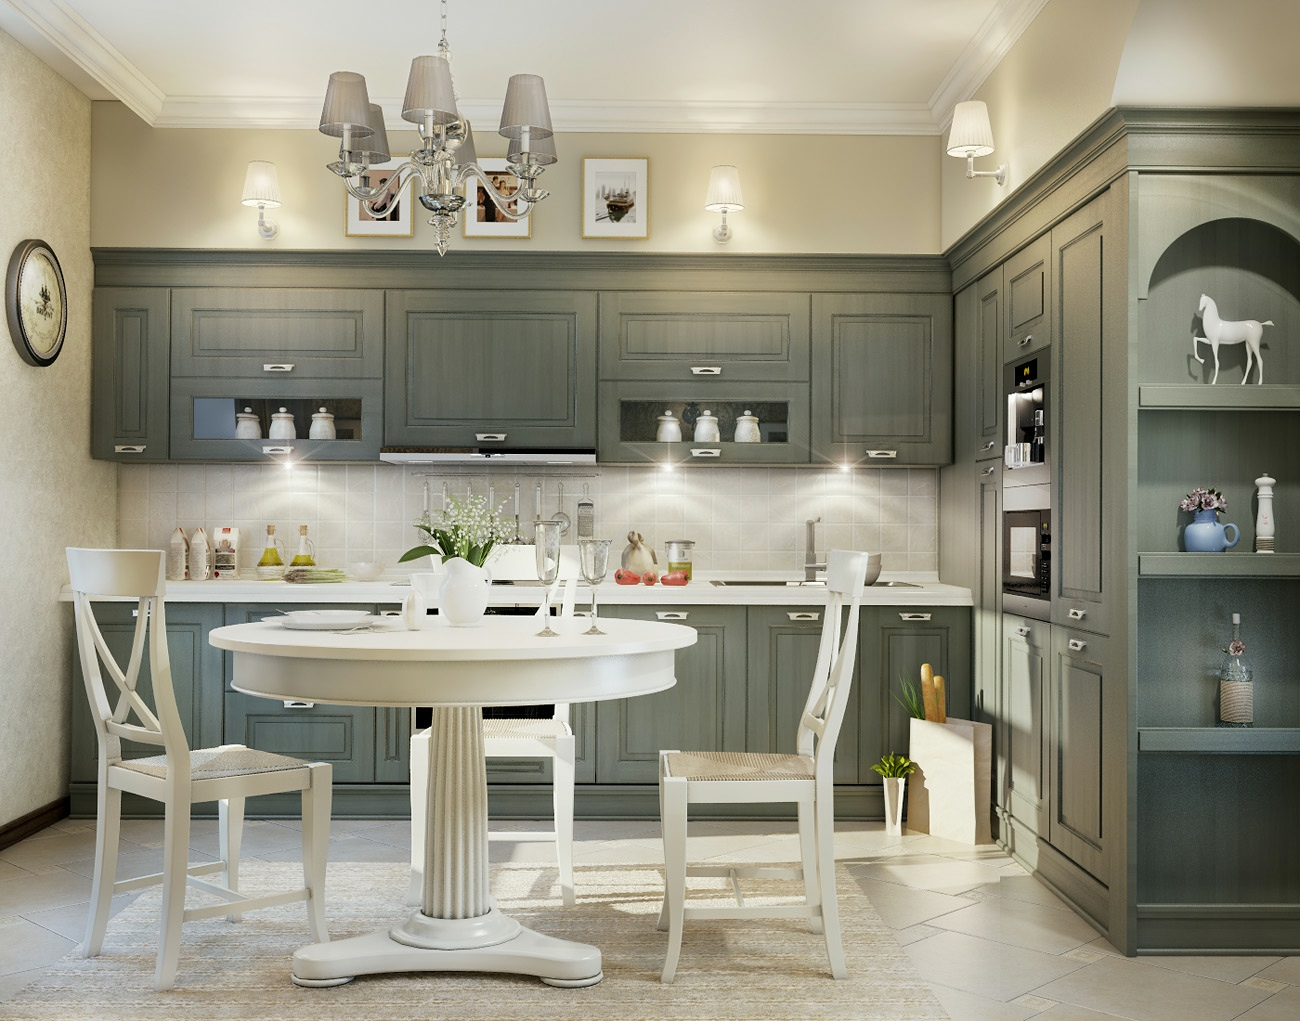 Kitchen Design In The Style Of A Modern Classic Kitchen Design In A Classic Style 17 Photos Beautiful Projects